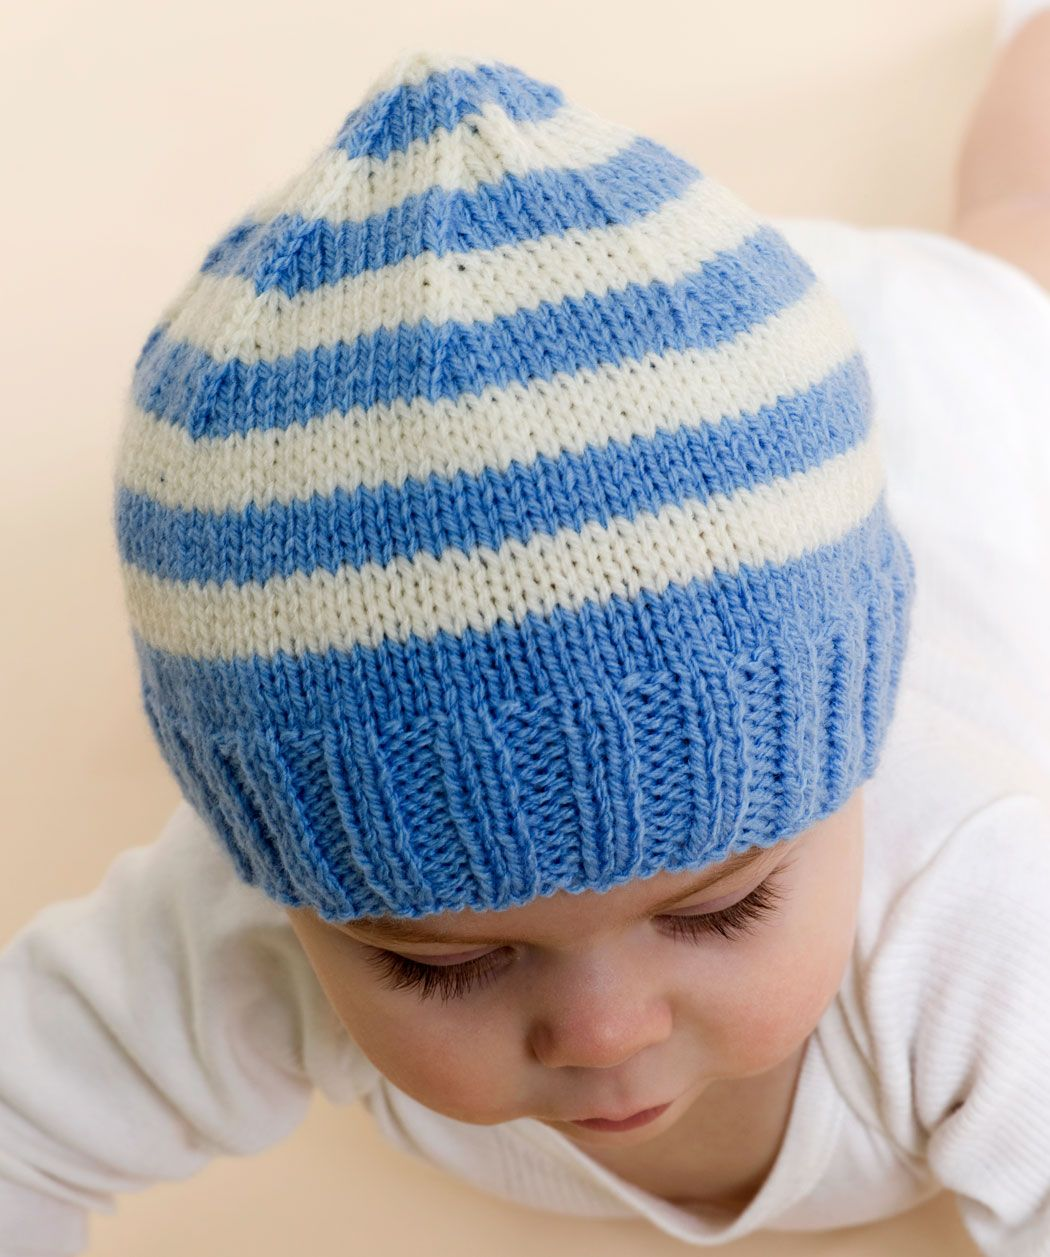 Free Knitting Patterns Baby Hats | Stripe Knit Baby Hat Knitting ...